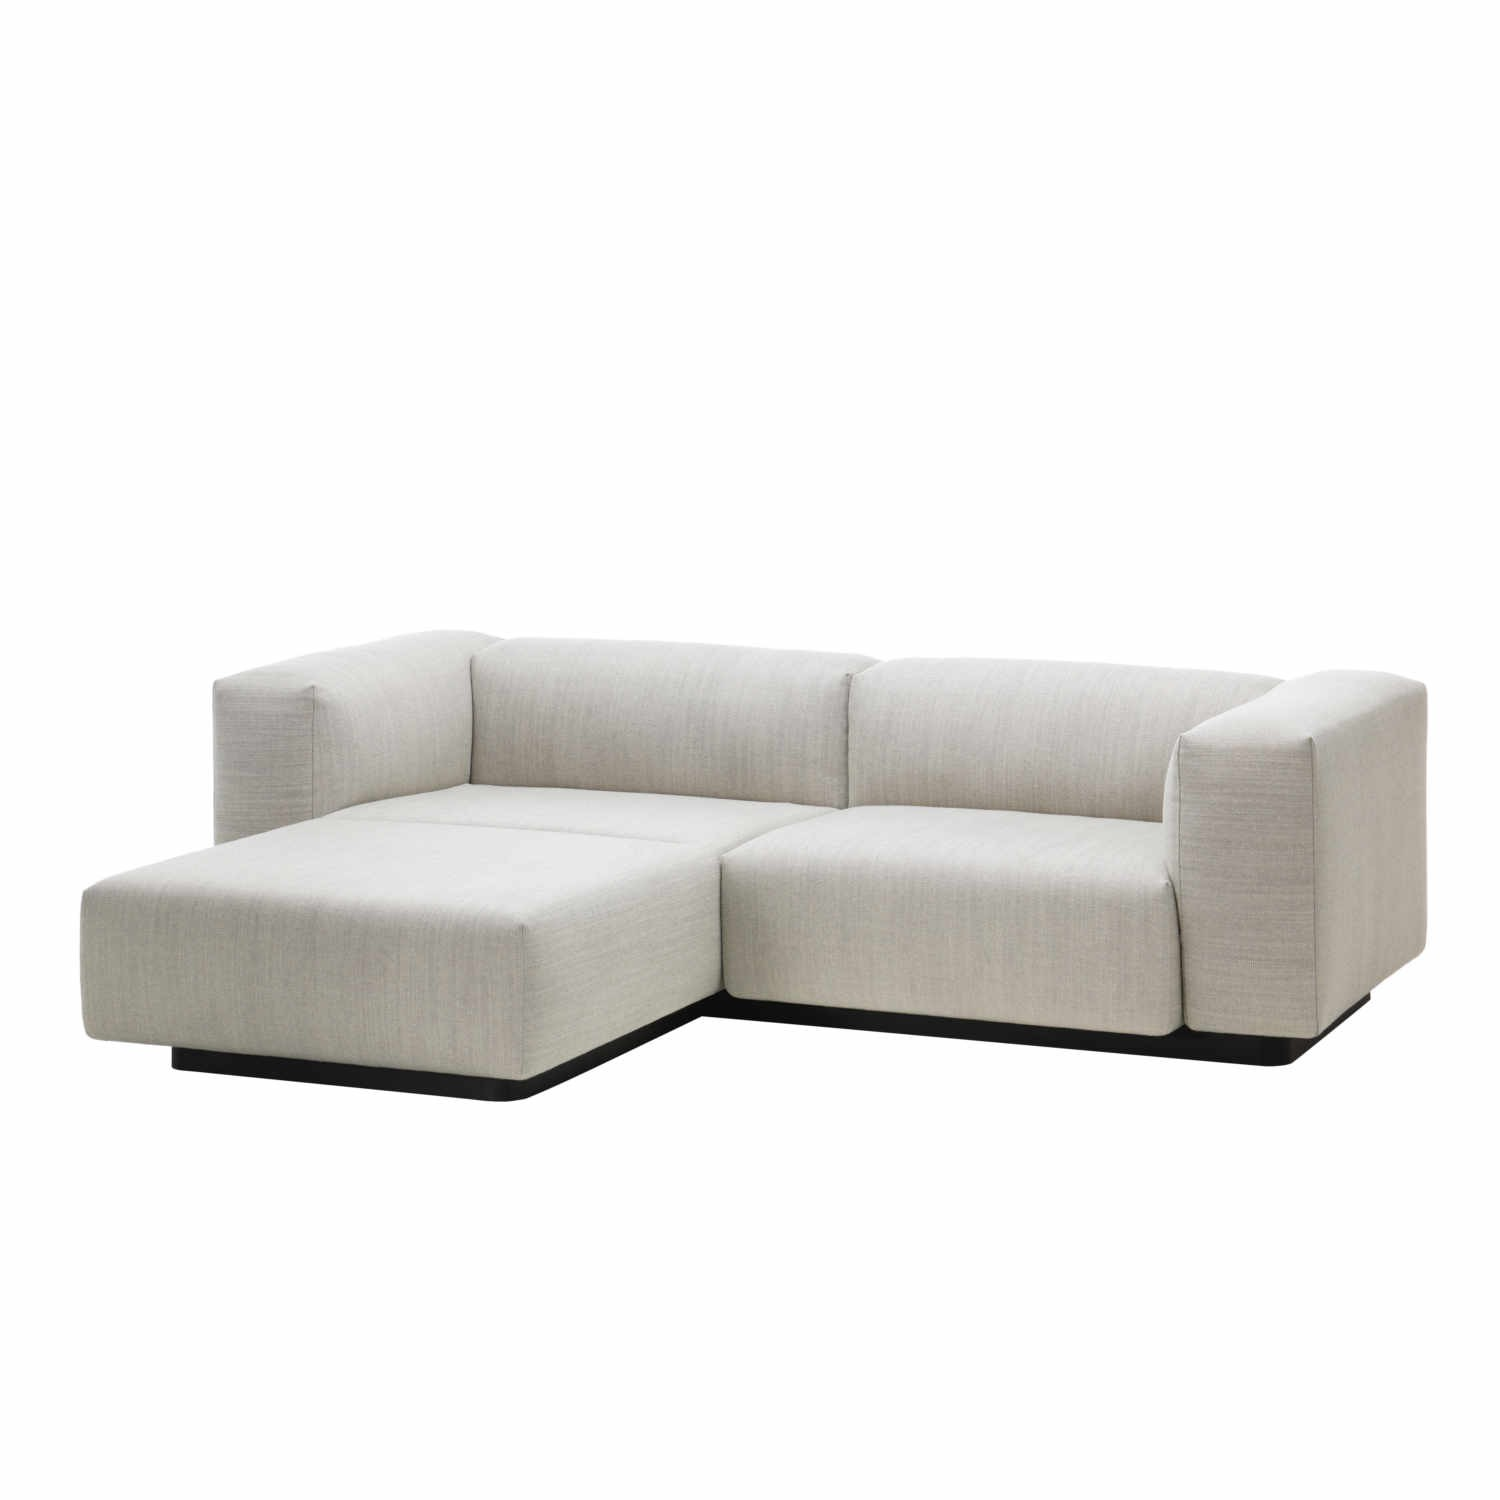 Chaise Longue Soft Modular 2er Sofa Chaise Longue